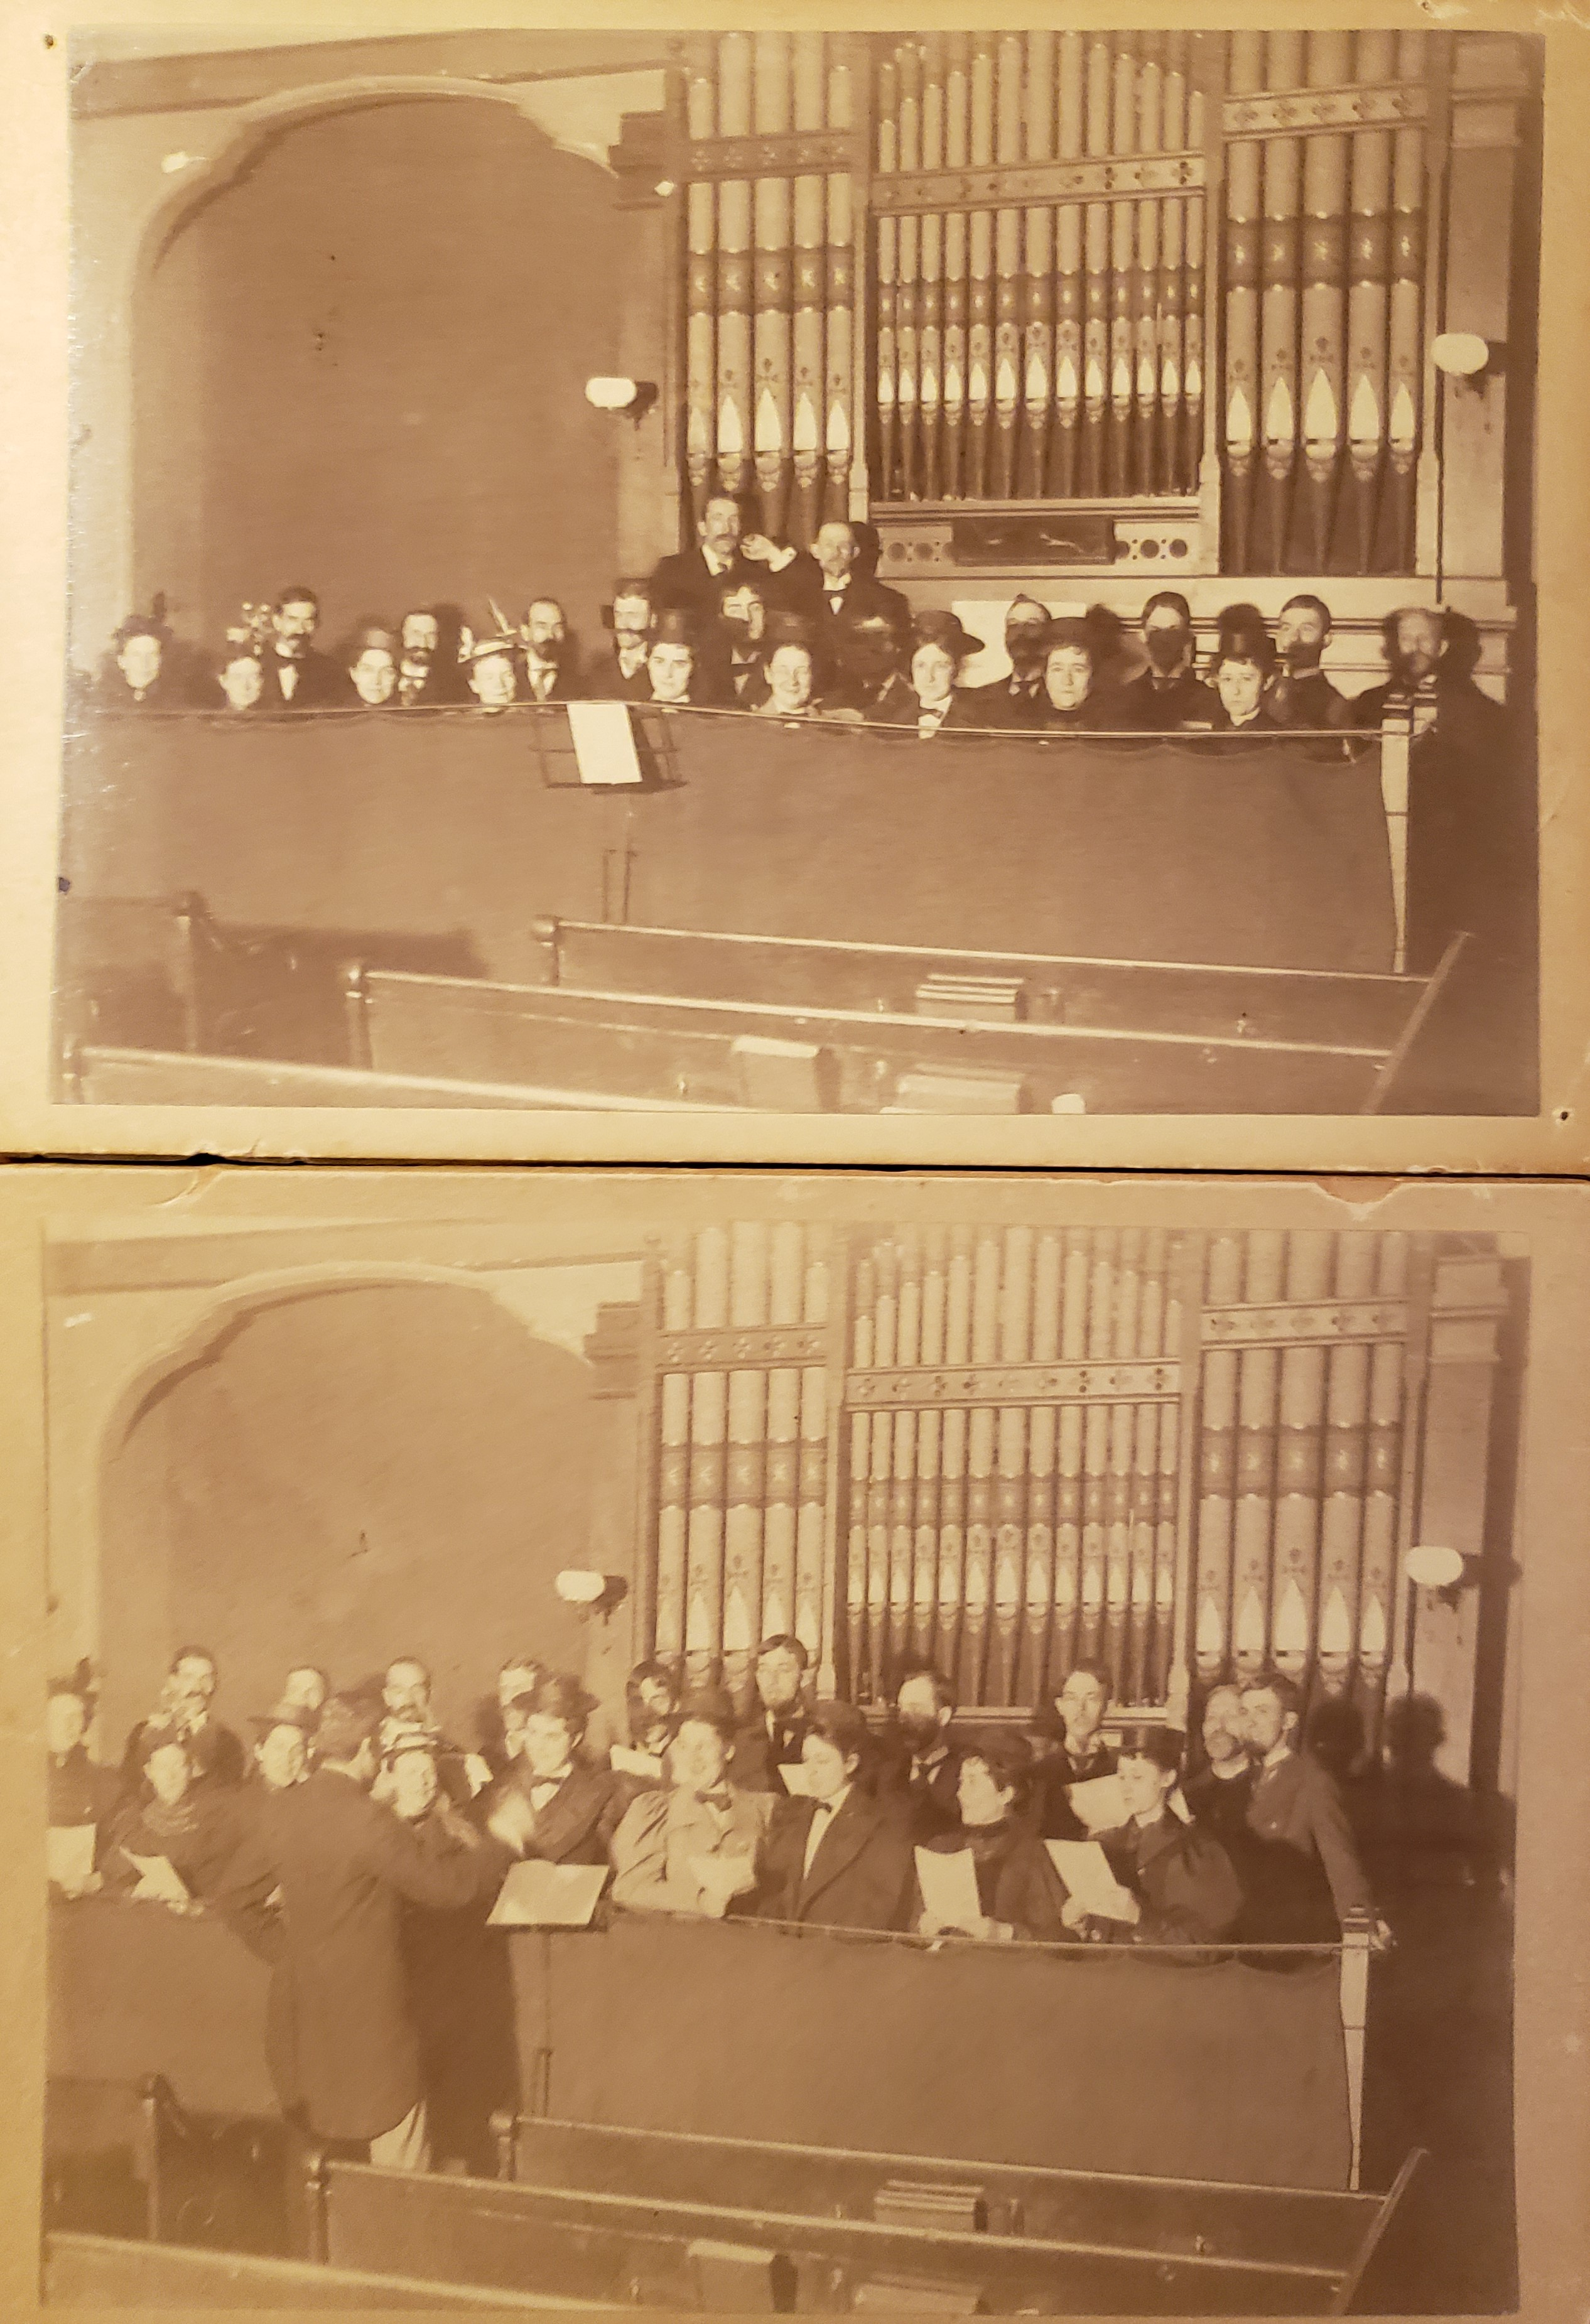 Two images of the choir at Central Congregational Church in Newton, Mass.